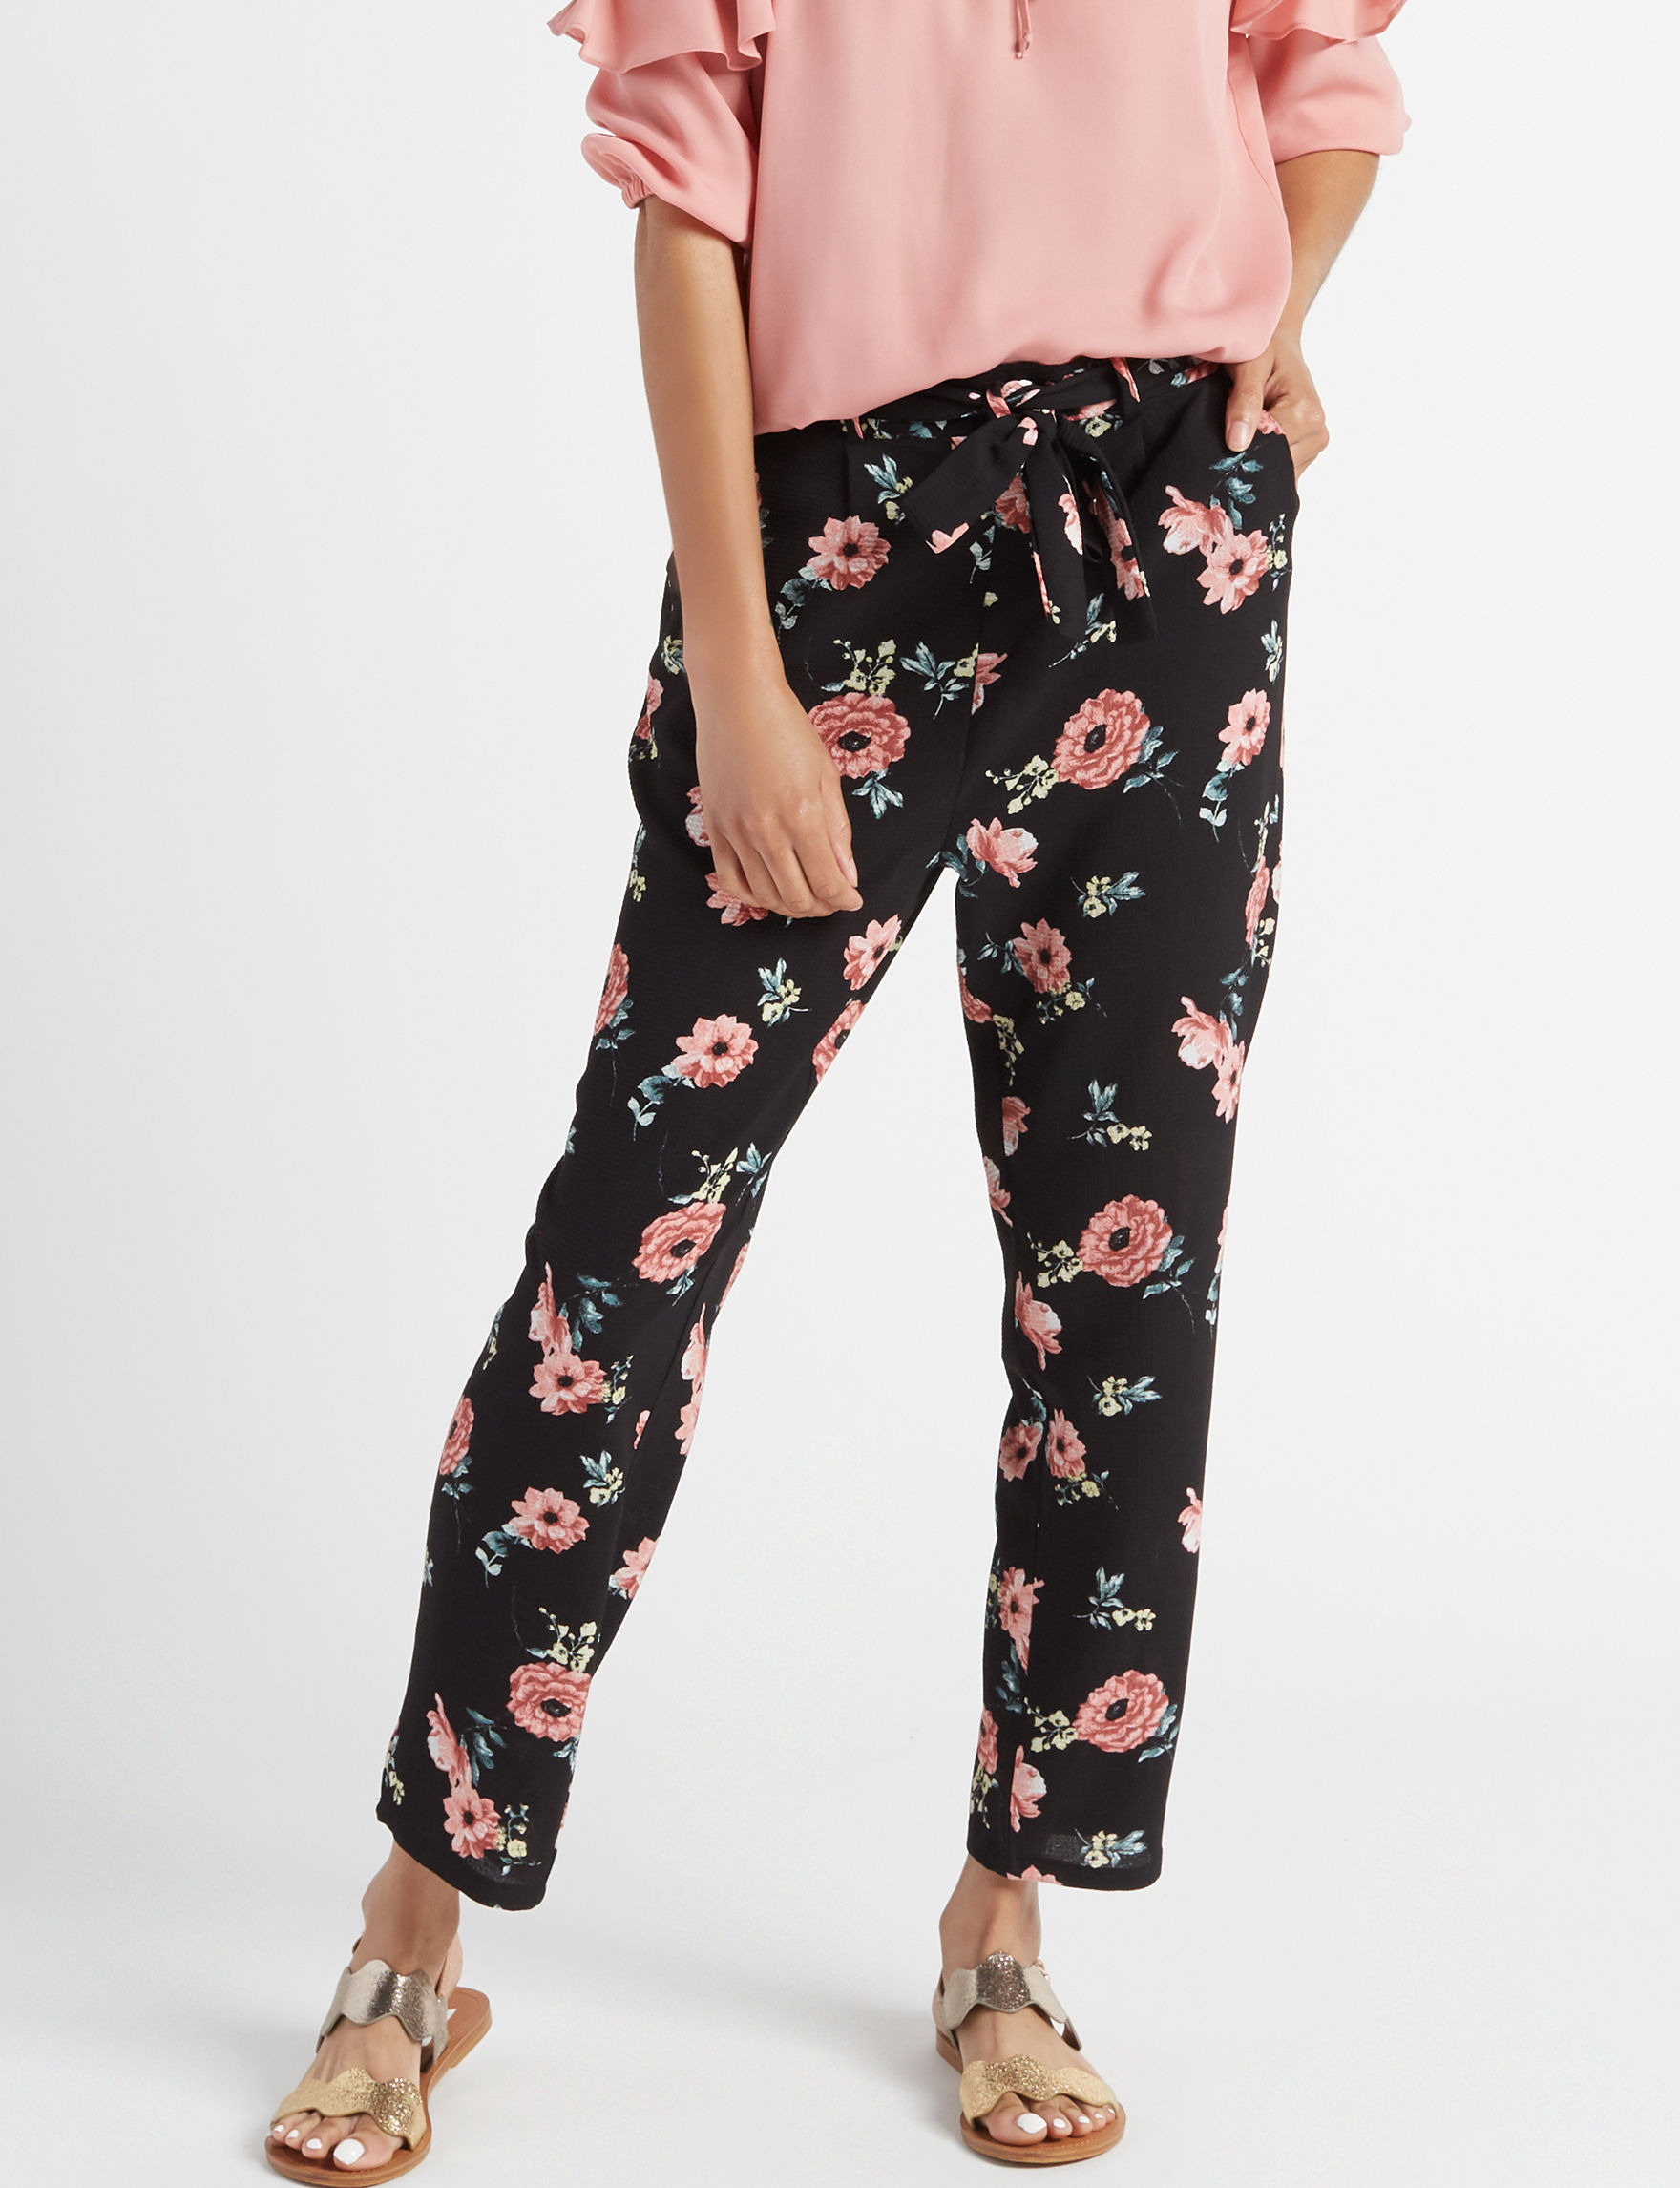 Justify Black Floral Skinny Soft Pants Tapered